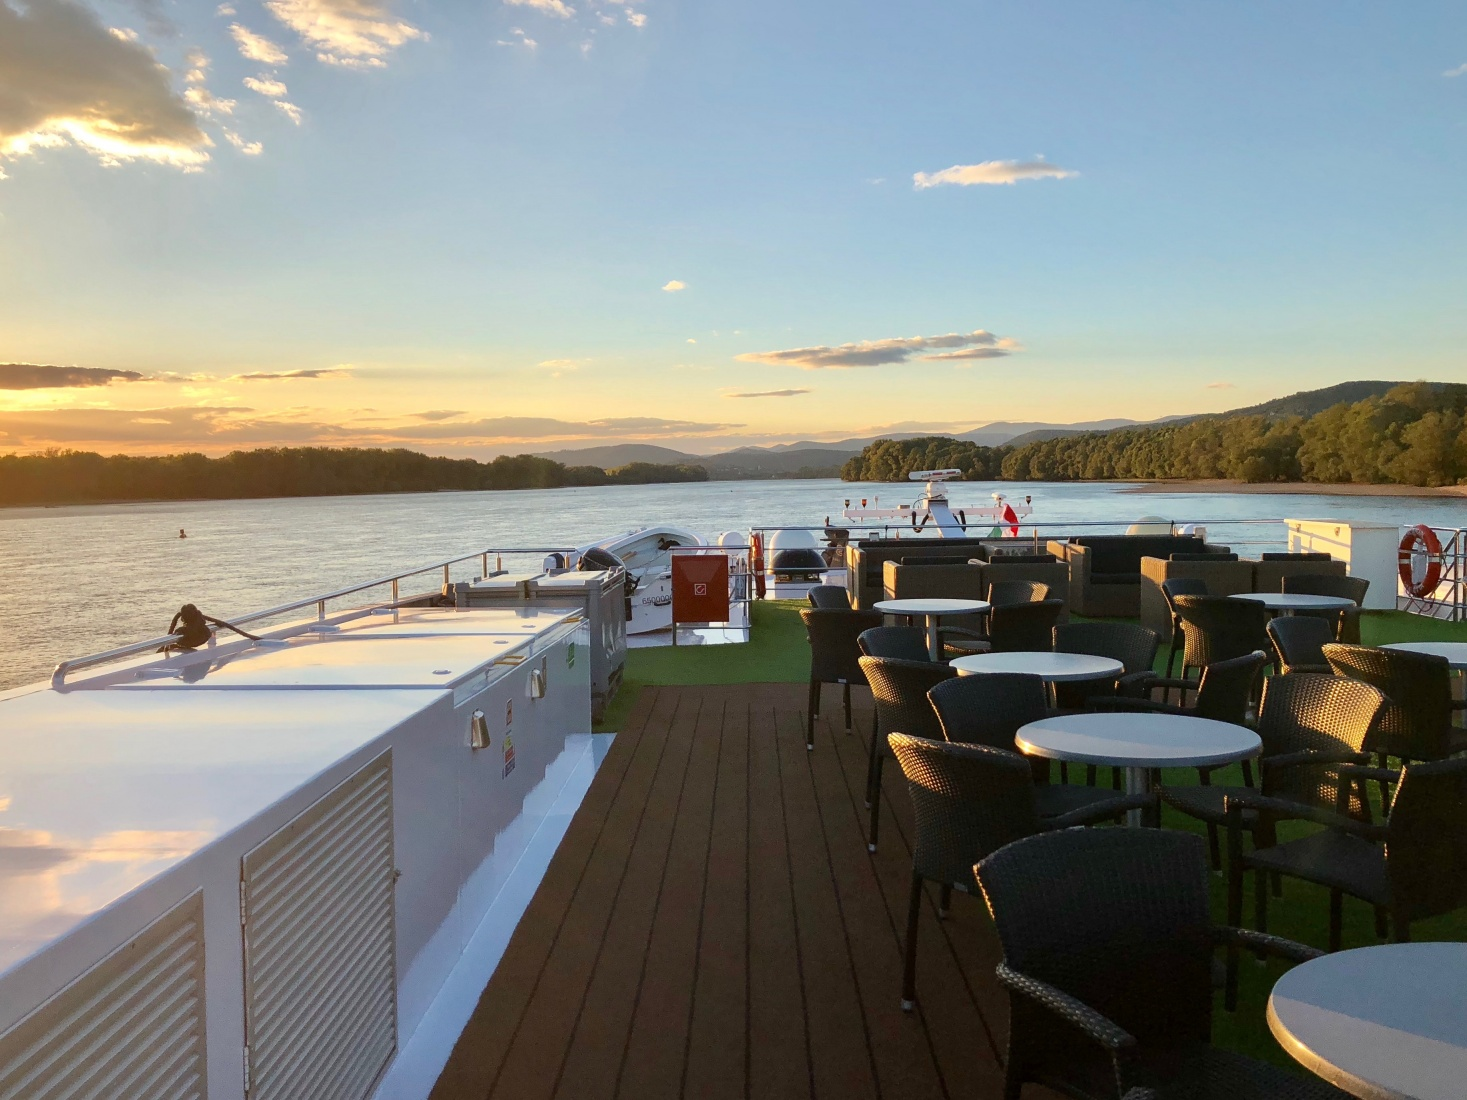 The sunset from the top deck of the National Geographic ship, on the Danube somewhere in Slovakia, near the Austrian border.